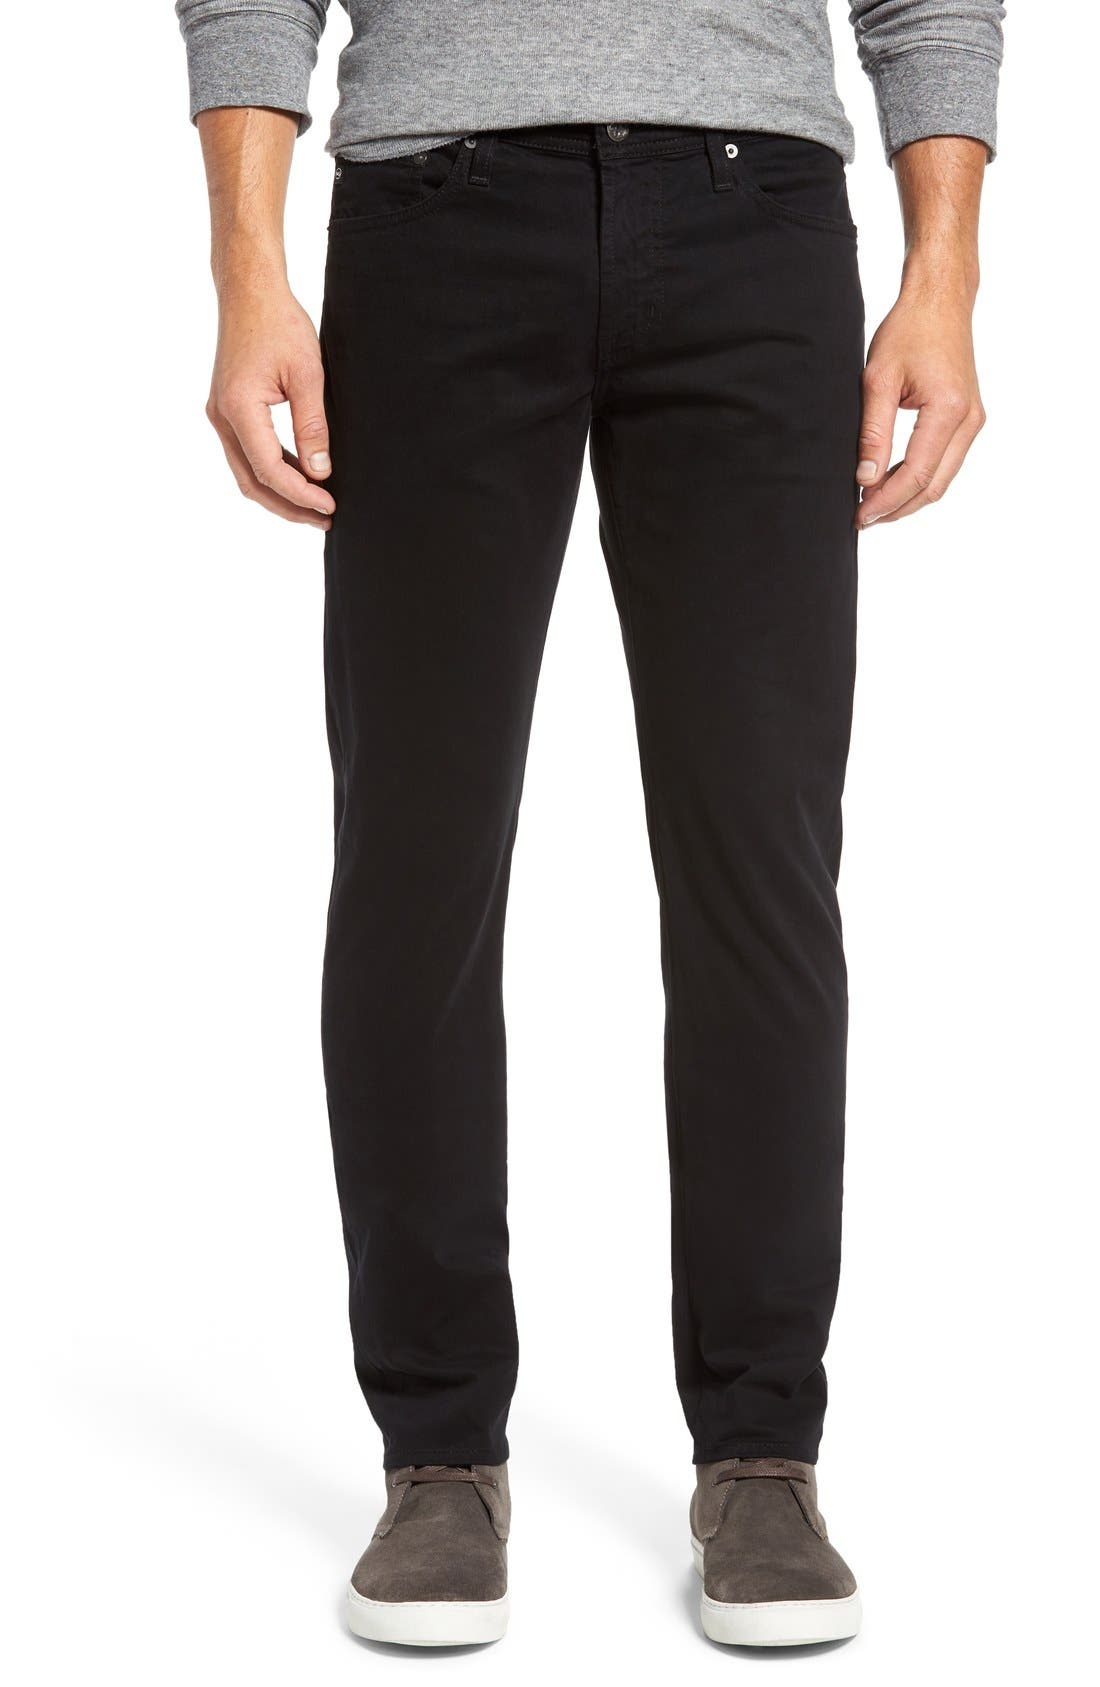 Dylan Slim Fit Pants,                         Main,                         color, 1 Year Black Night